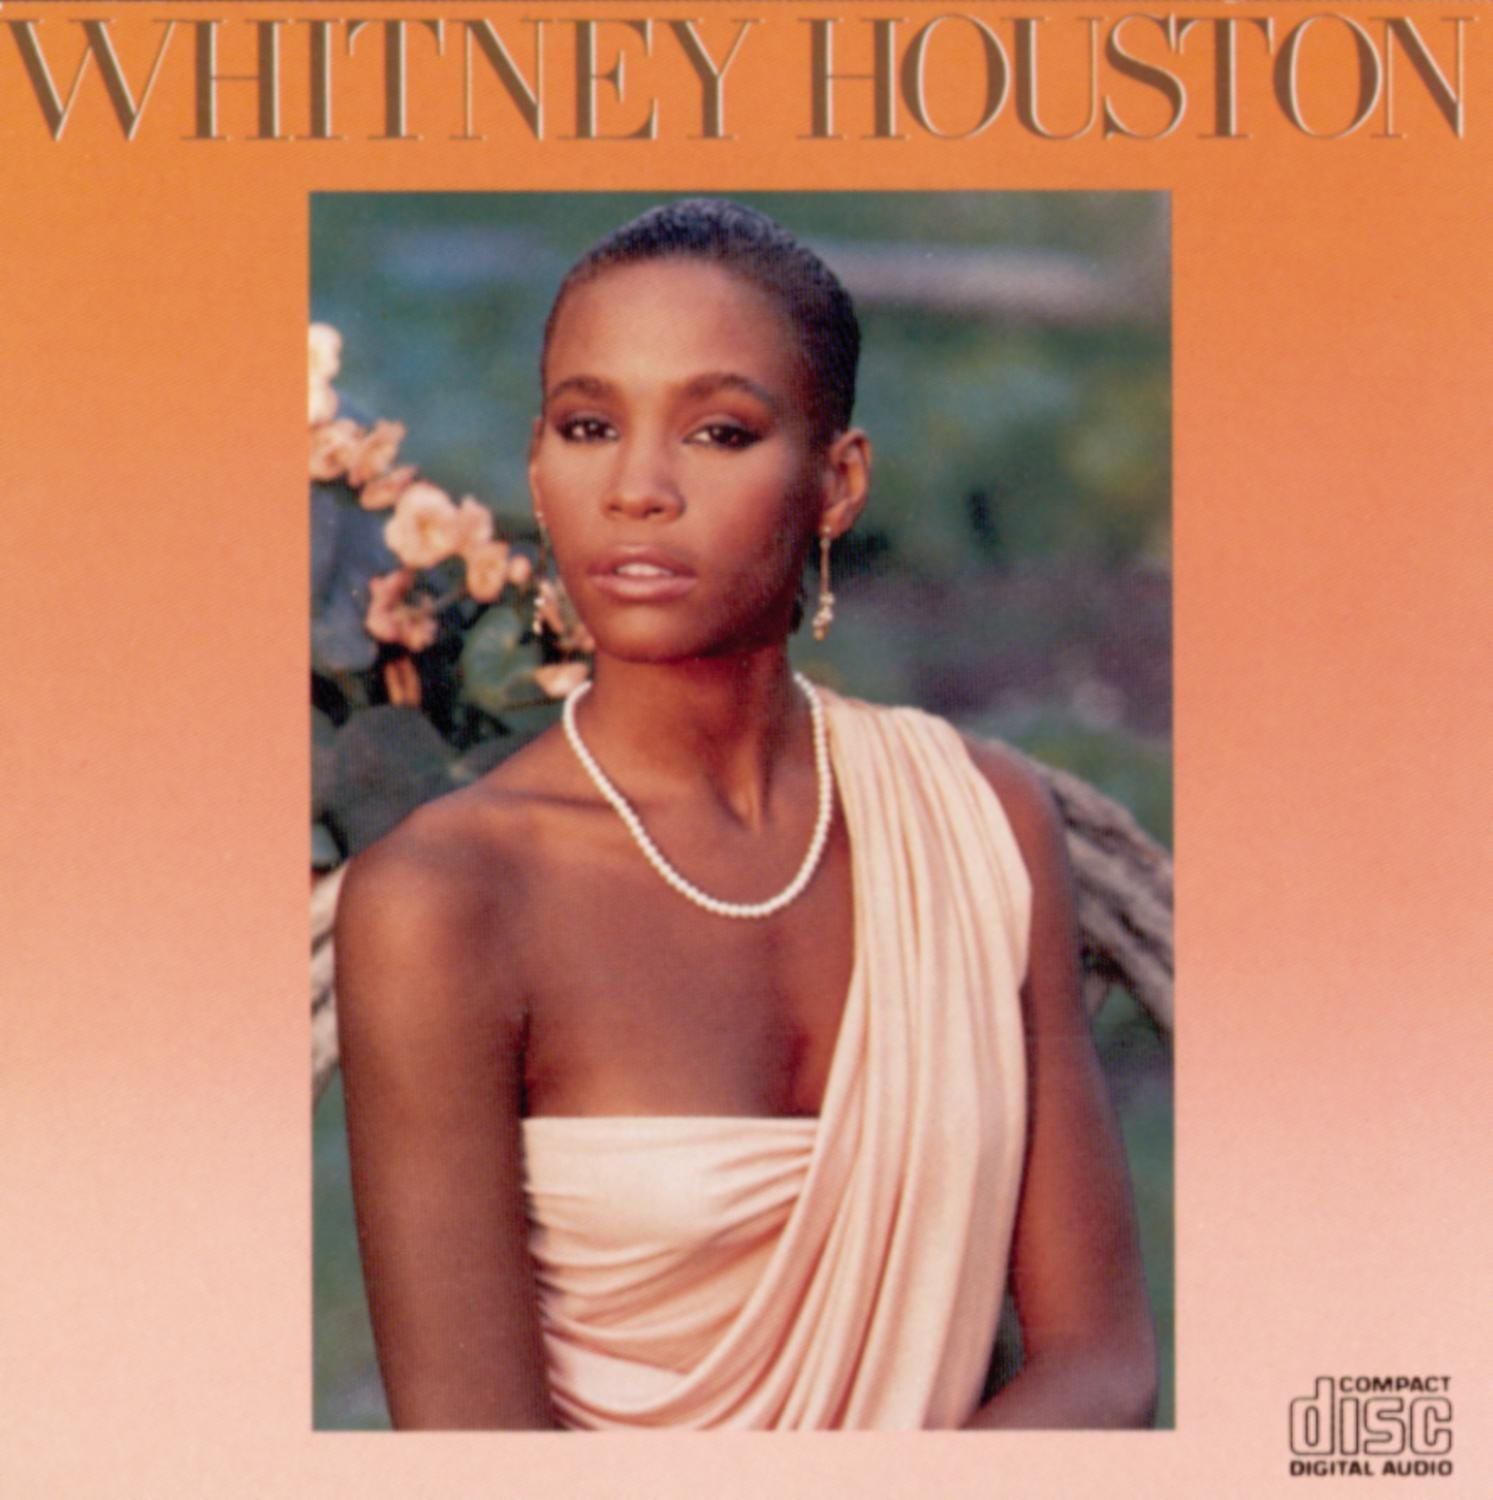 Whitney Houston - Whitney Houston - Amazon.com Music